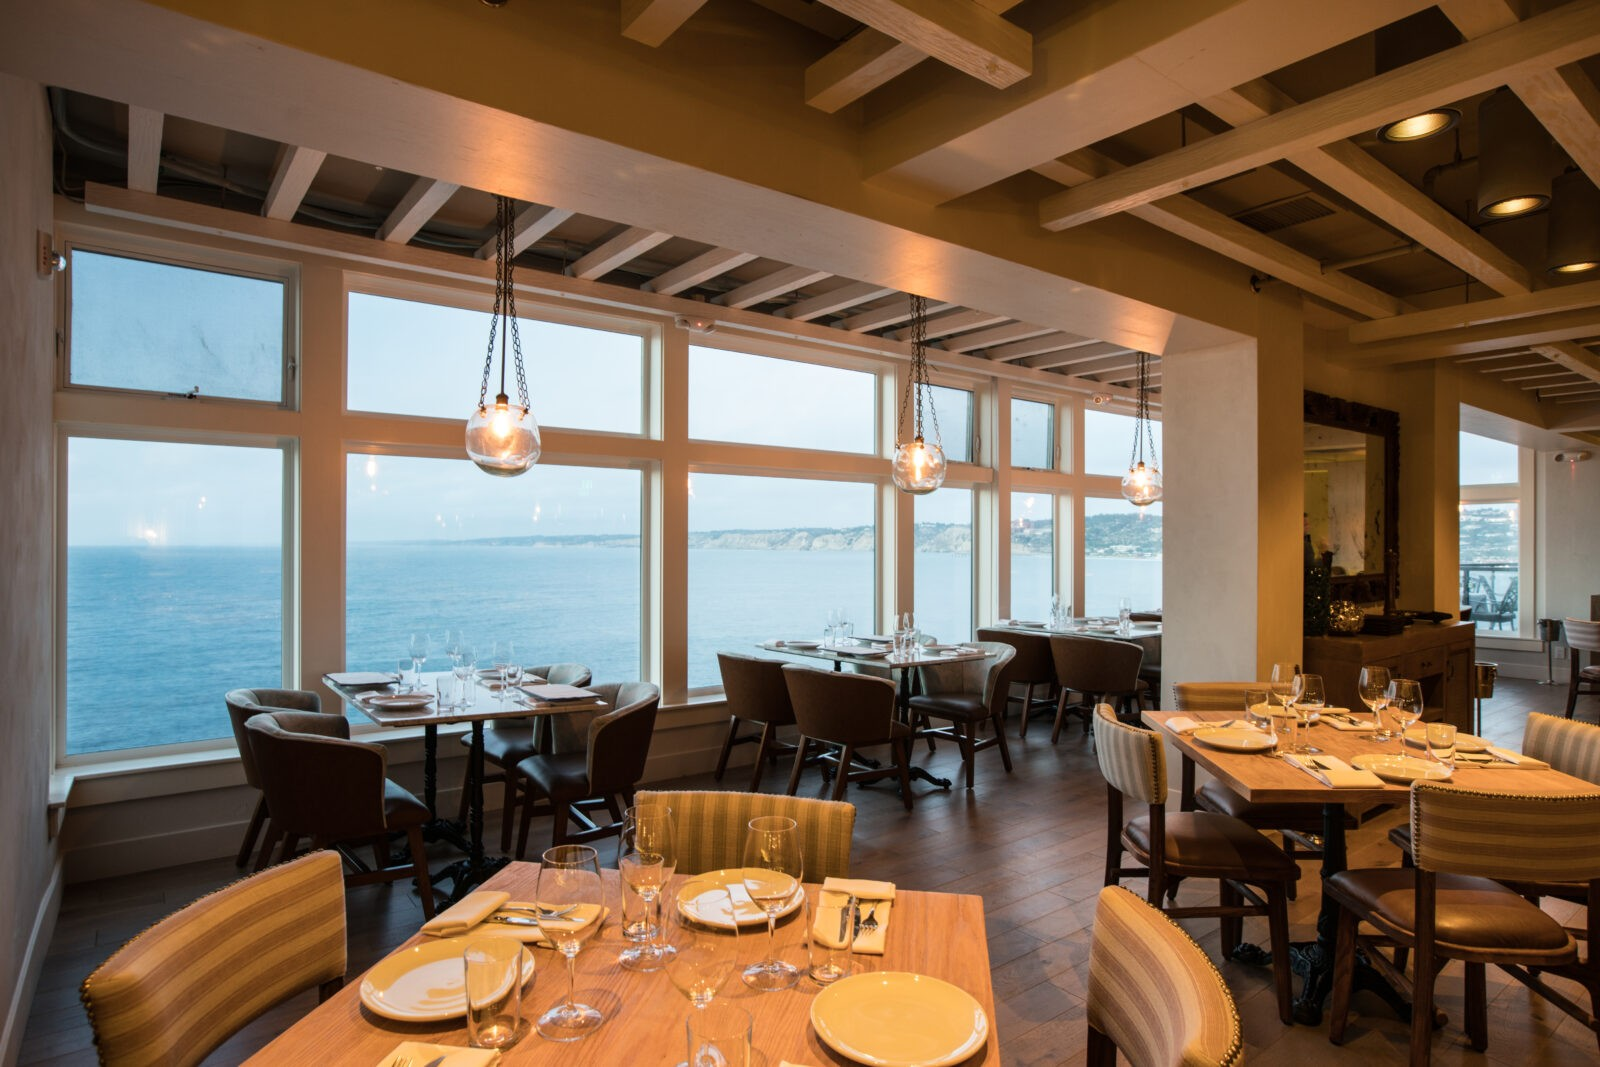 Gorgeous Oceanfront Restaurant In La Jolla Curly The Hake